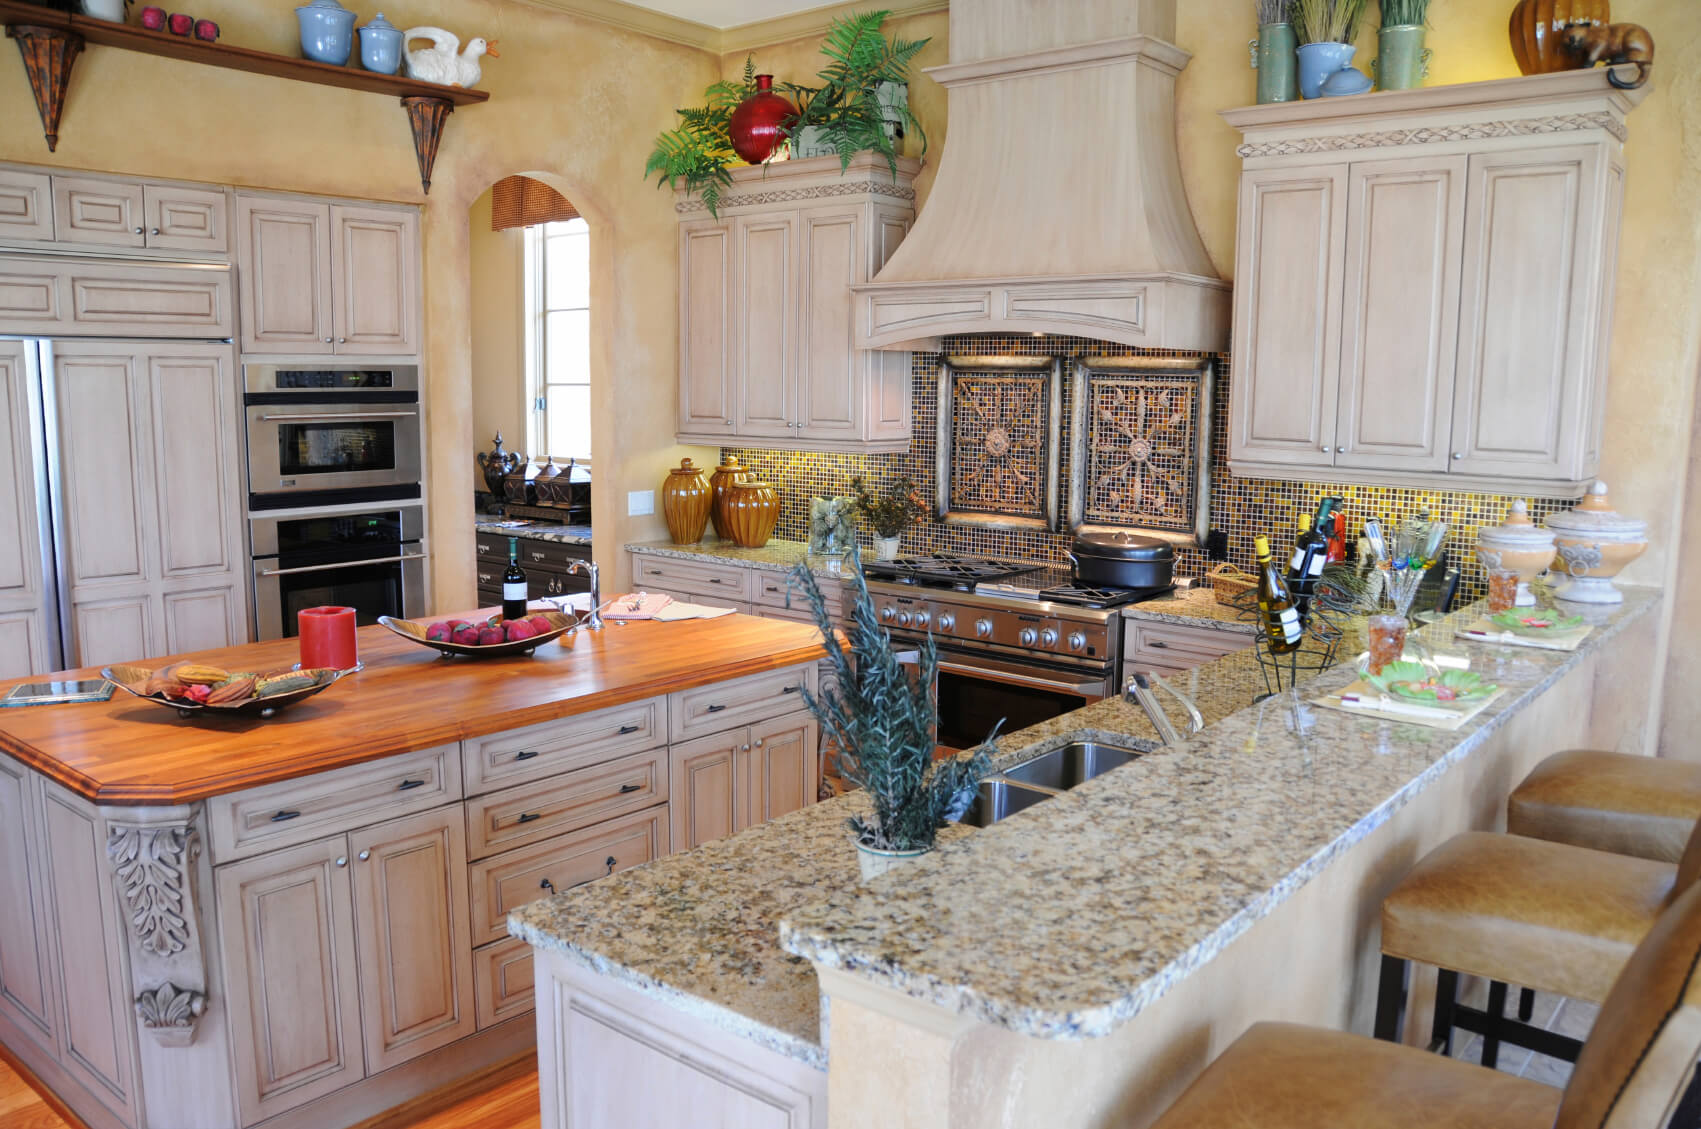 Light painted wood island features bright natural wood countertop, matching hardwood flooring in this detailed kitchen.